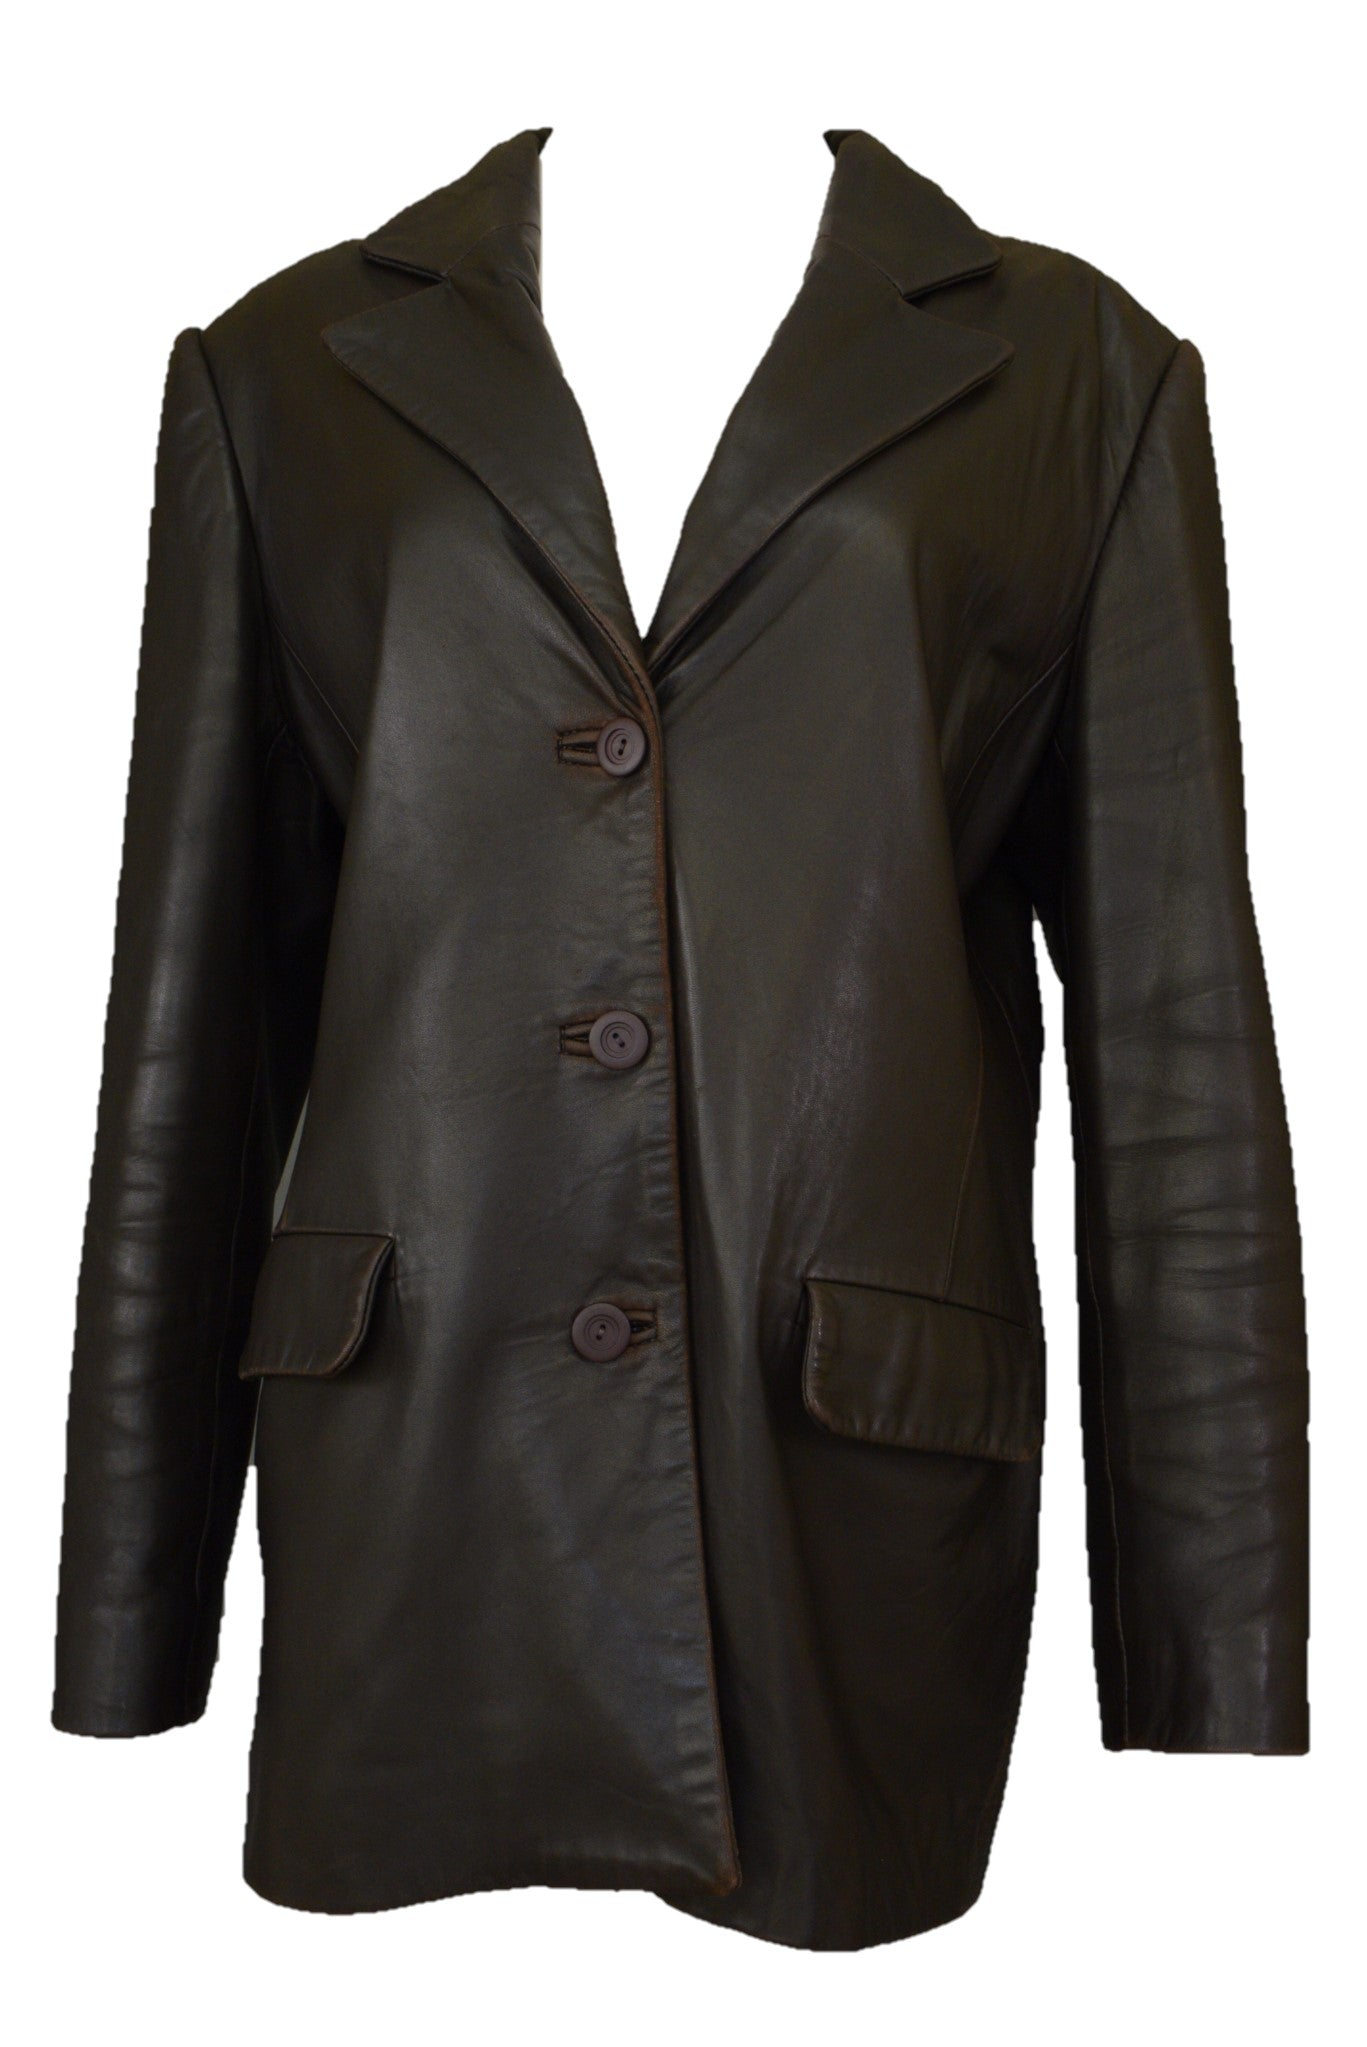 Guru Leather custom made chocolate brown leather women's jacket